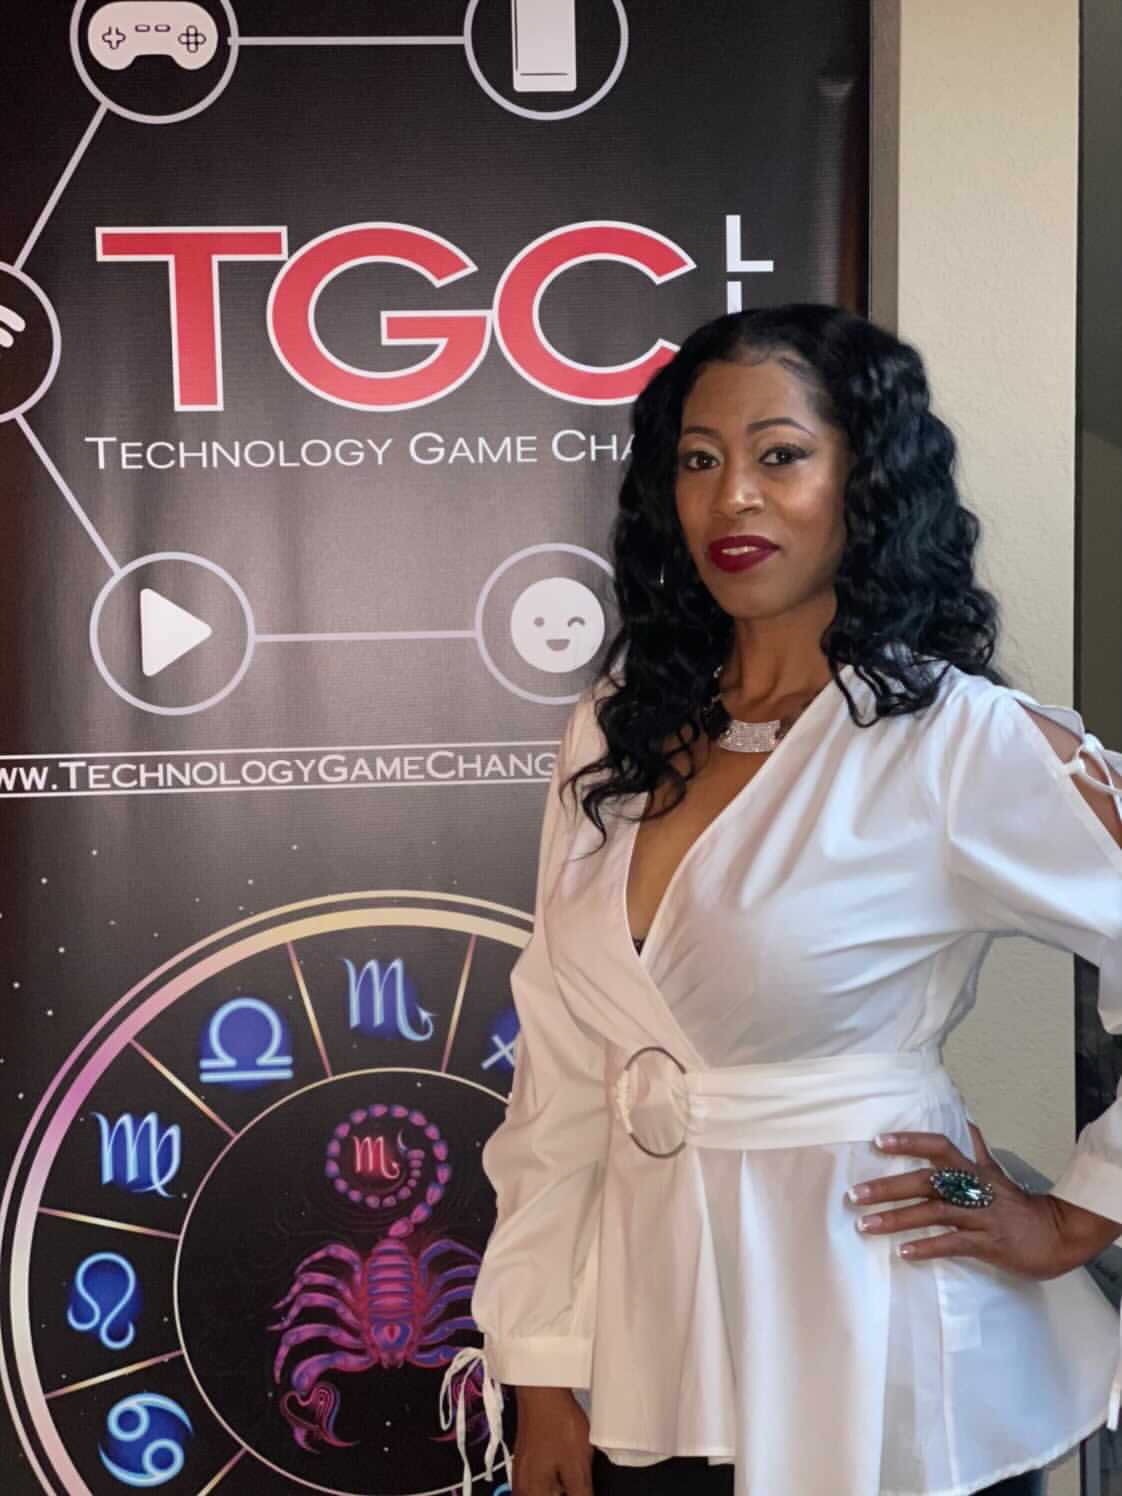 Technology Game Changers (TCG) App & Gaming Startup Moves To Silicon Valley